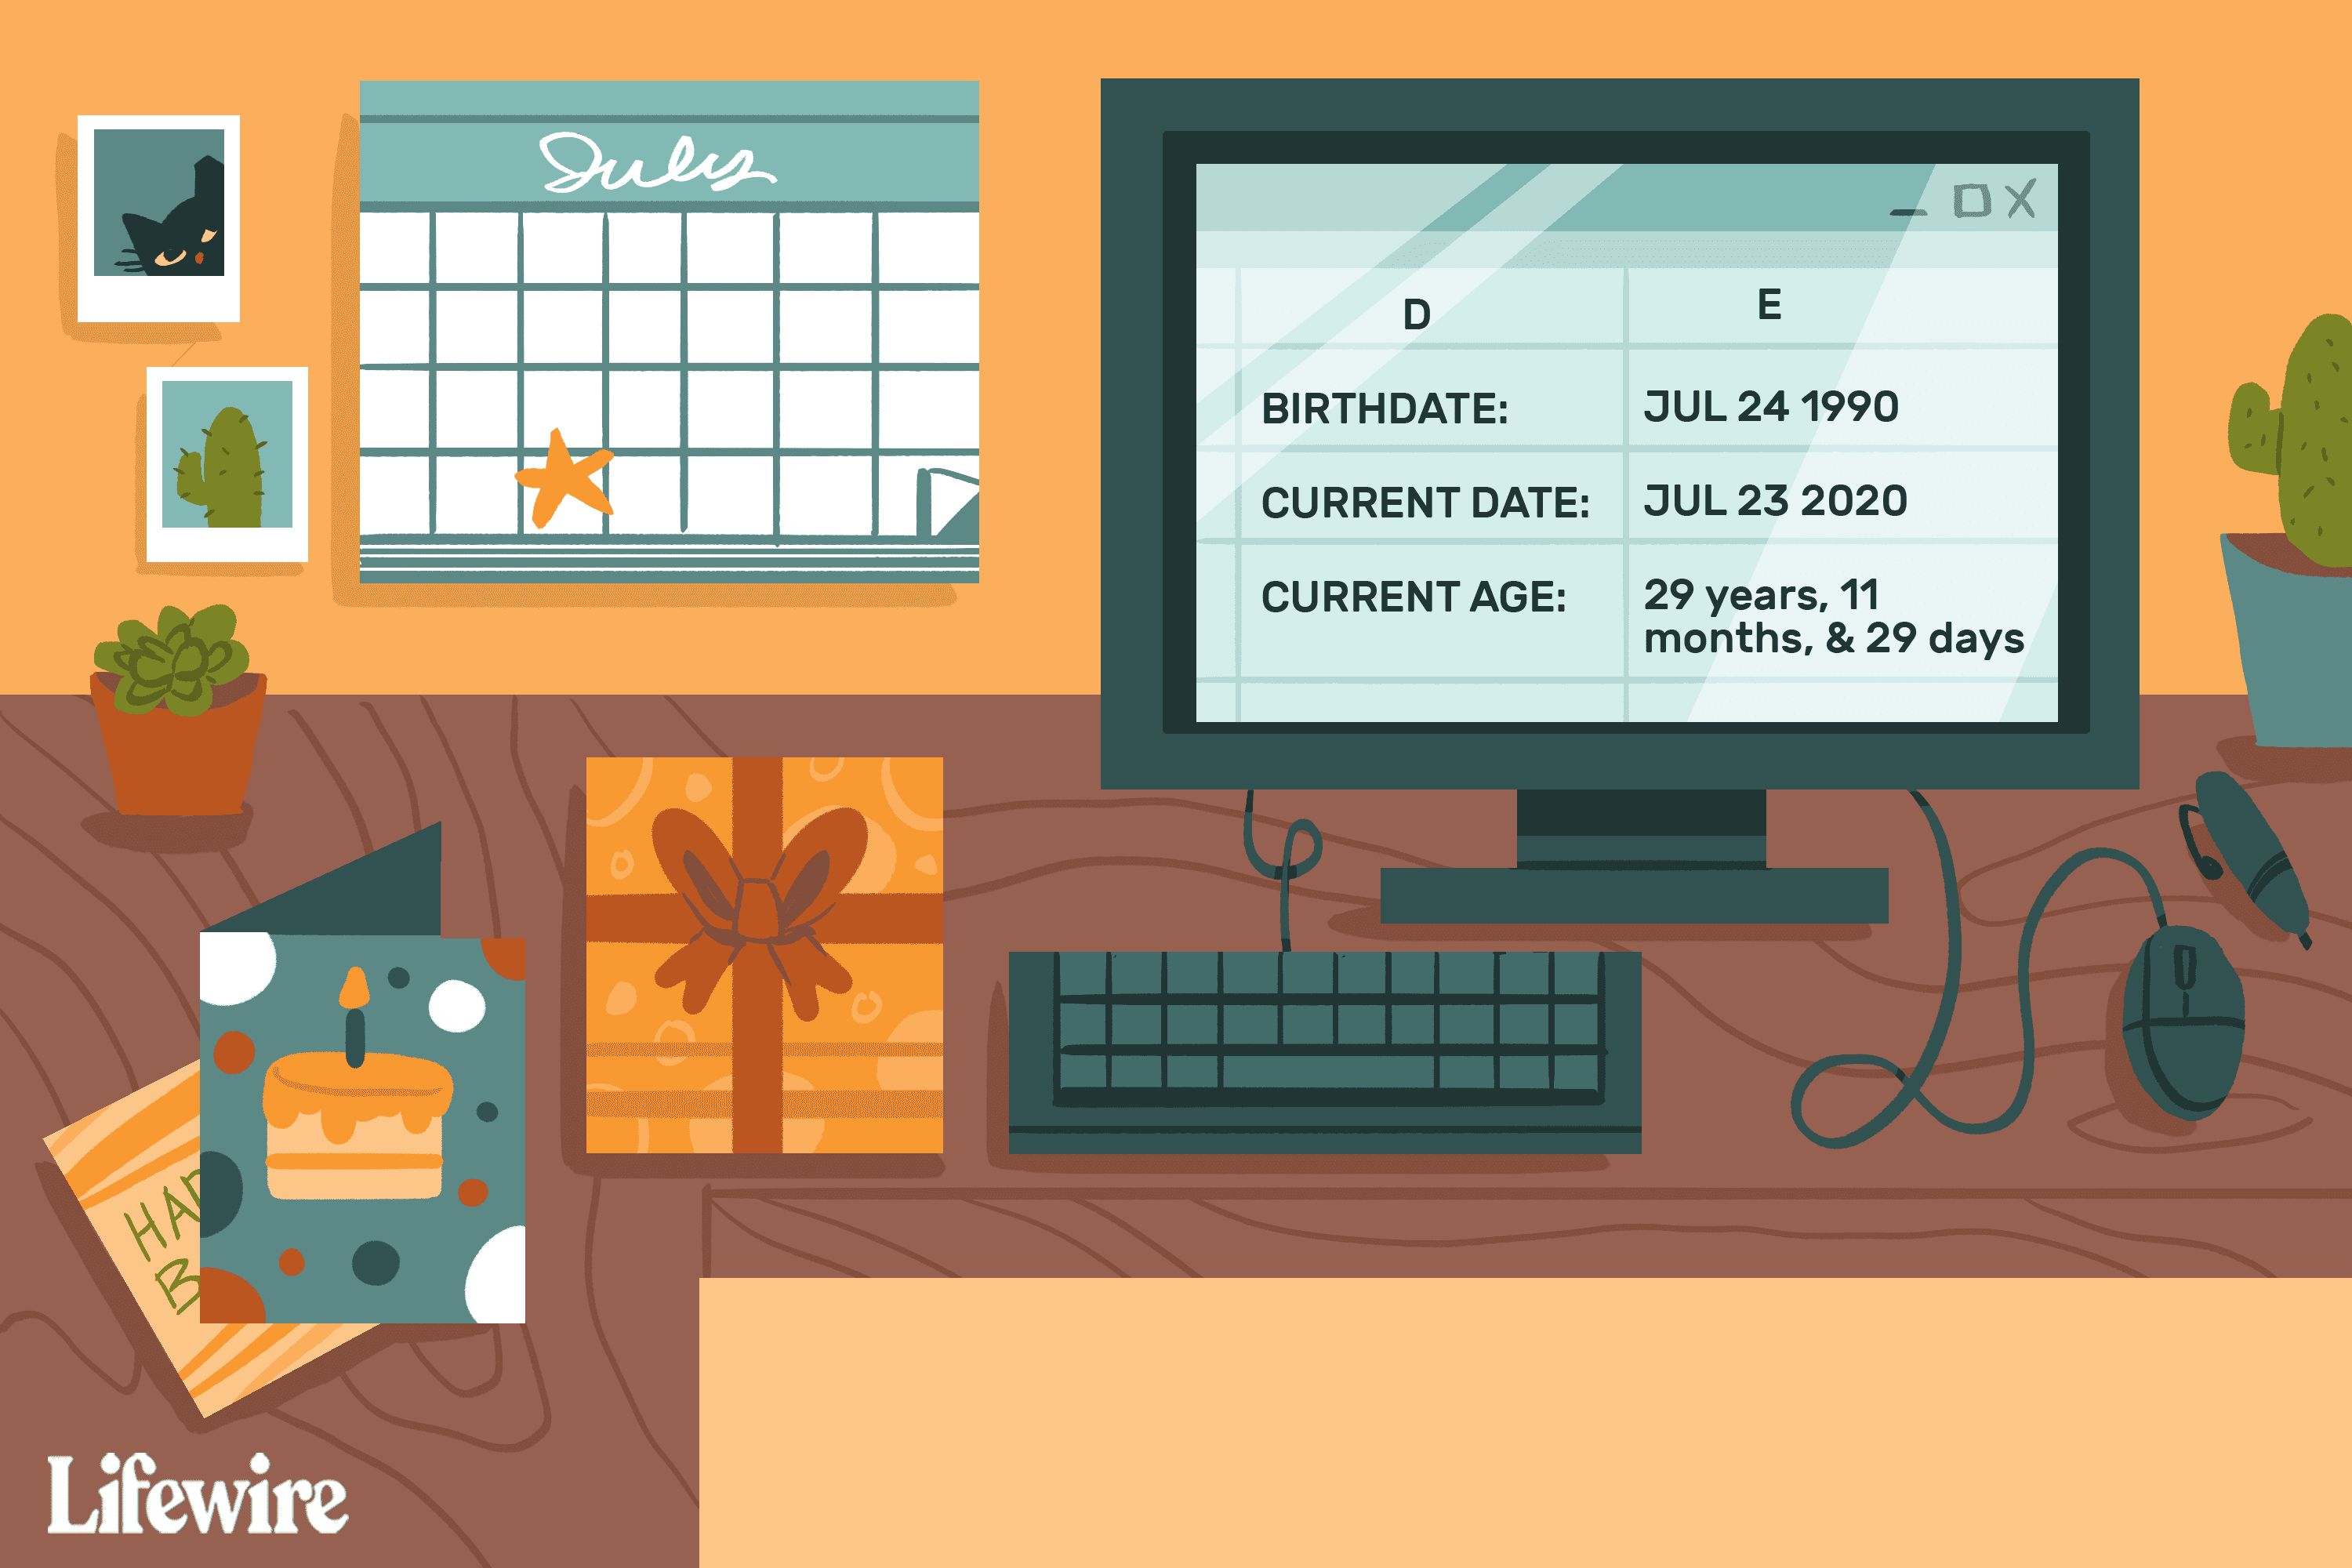 Illustration of an Excel spreadsheet on a computer calculating age in a room with birthday cards and presents